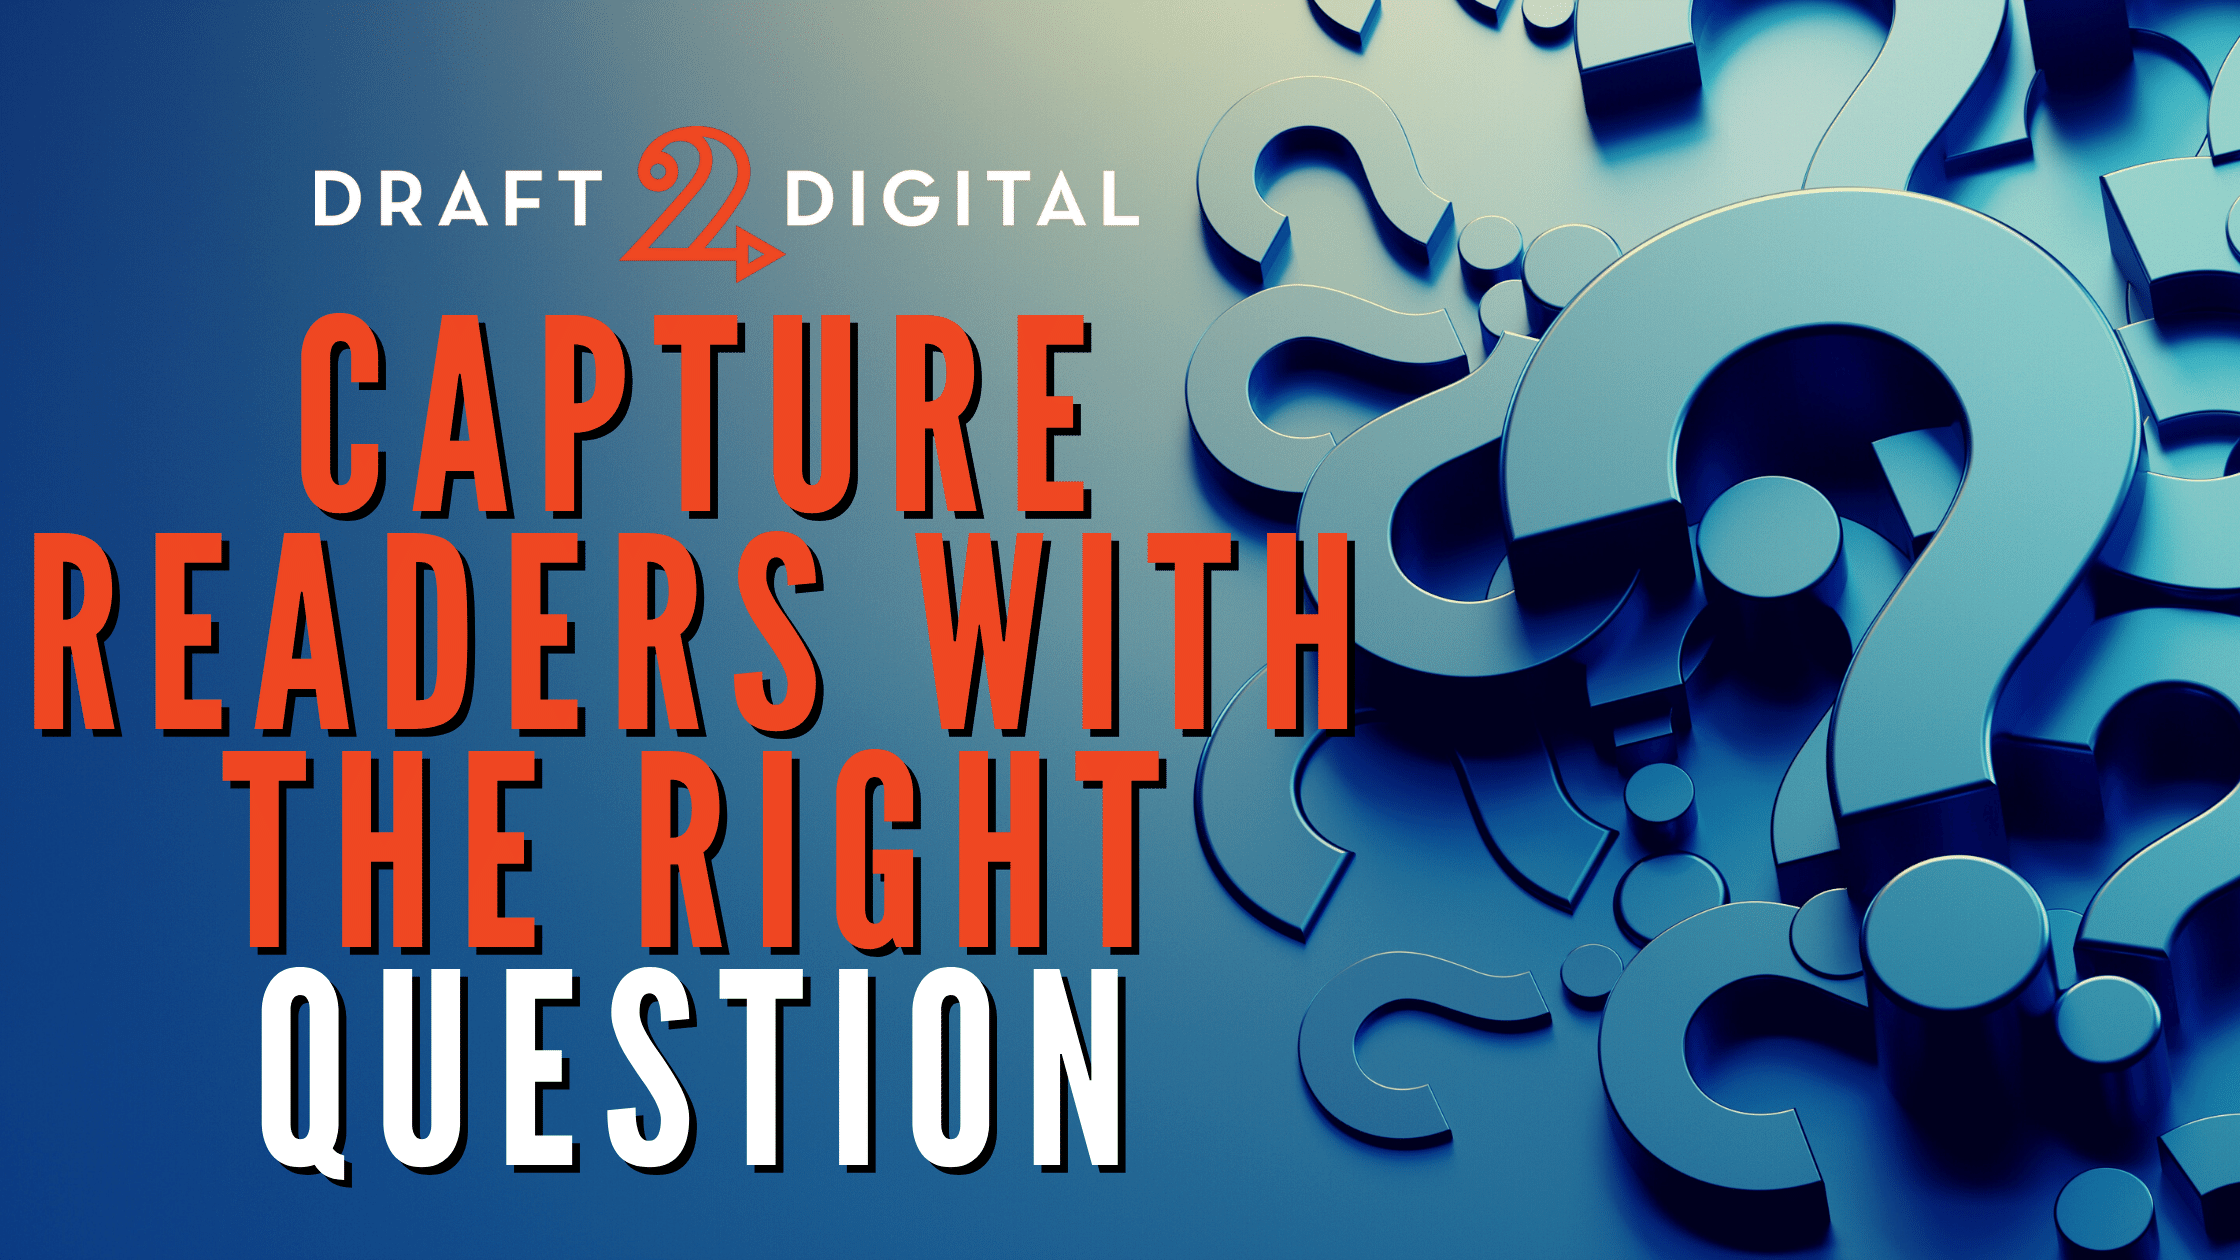 Capture Readers with the Right Question